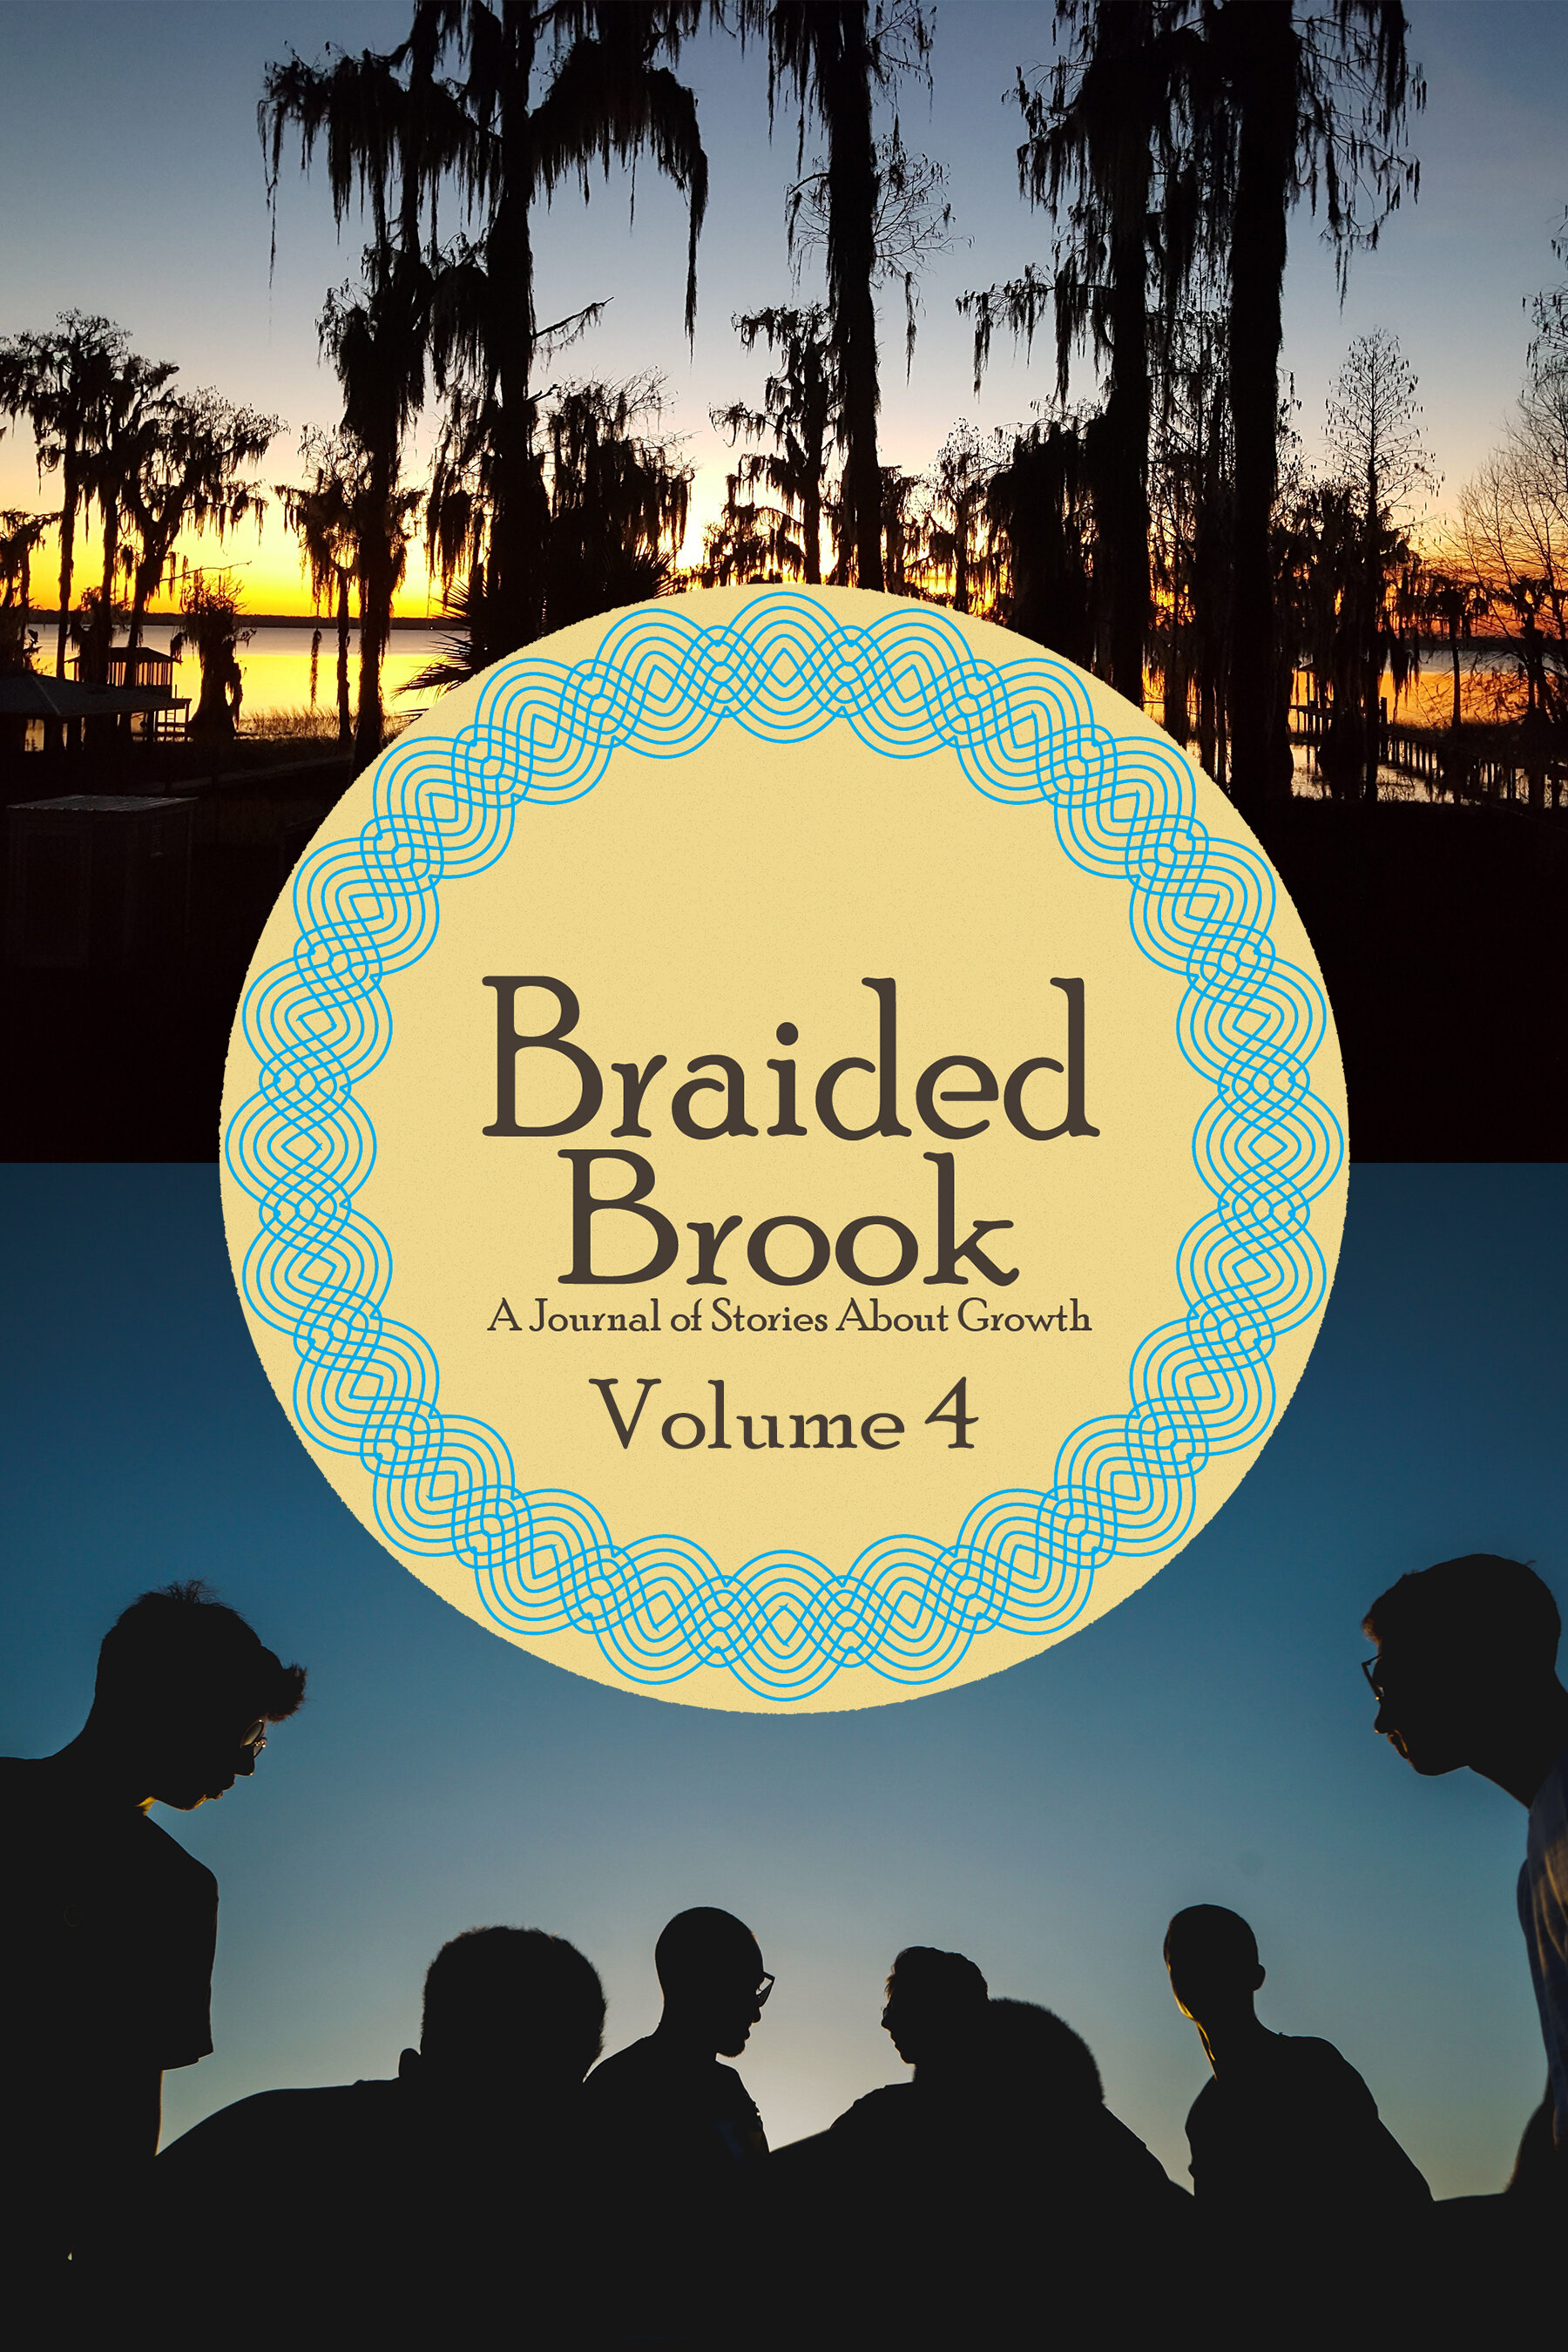 BraidedBook4CoverNEW.jpg